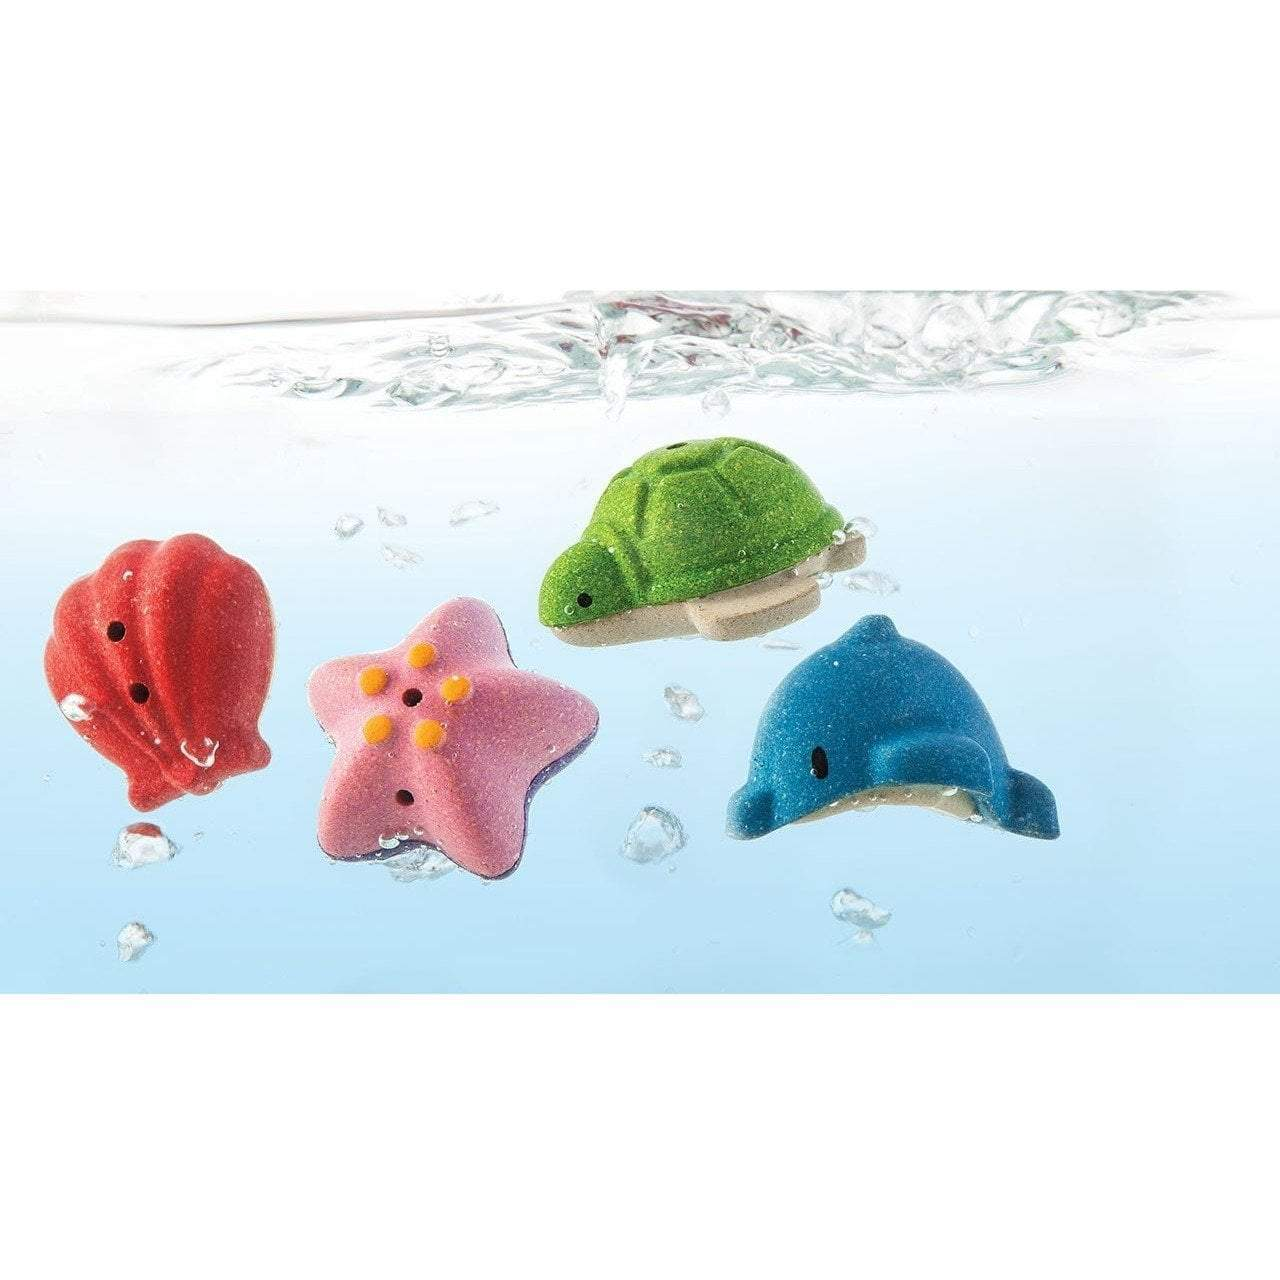 Plan Toys To Play Sealife Play Set kids-children-mums-parenting-toyshop-fun kids-children-mums-parenting-toyshop-fun